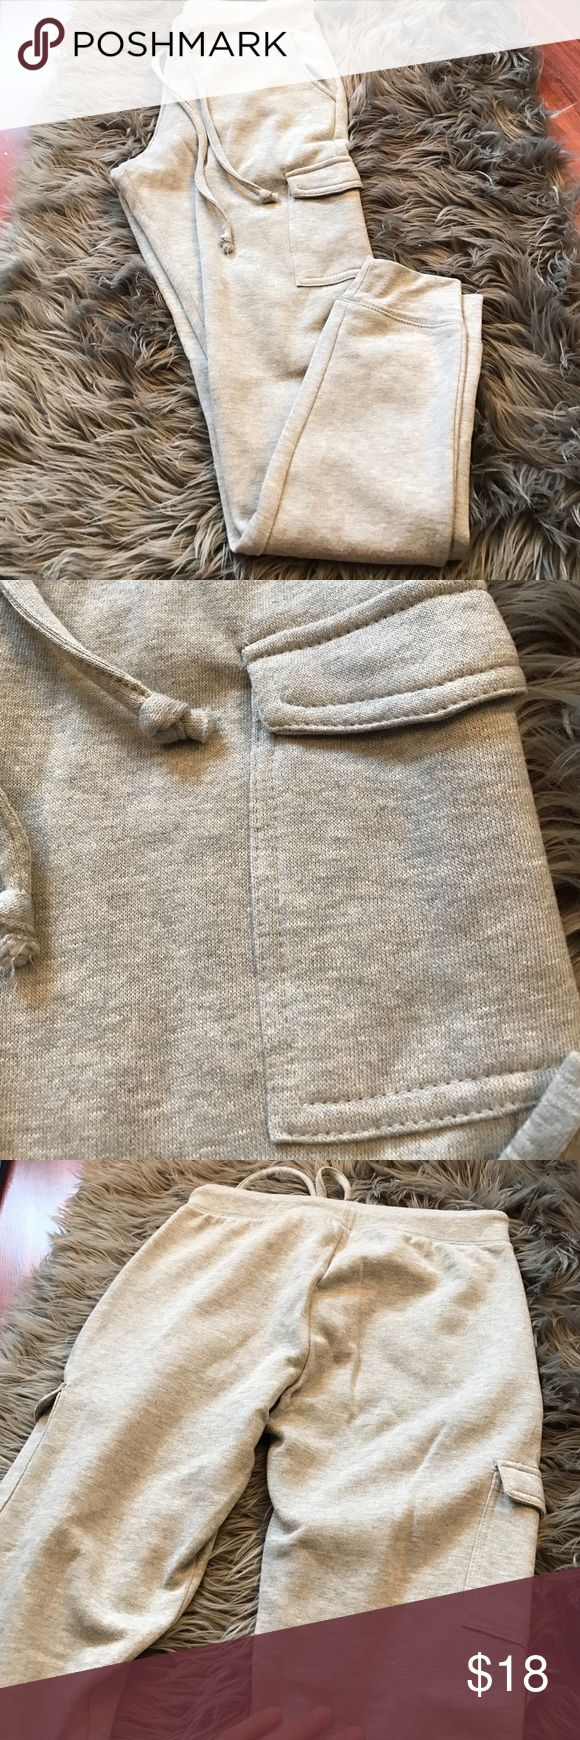 Gray cargo joggers All gray women's cargo joggers! They're a size medium but run small! They've never been worn before so are in excellent condition. They have a soft inside. Make an offer 😊 Wet Seal Pants Track Pants & Joggers